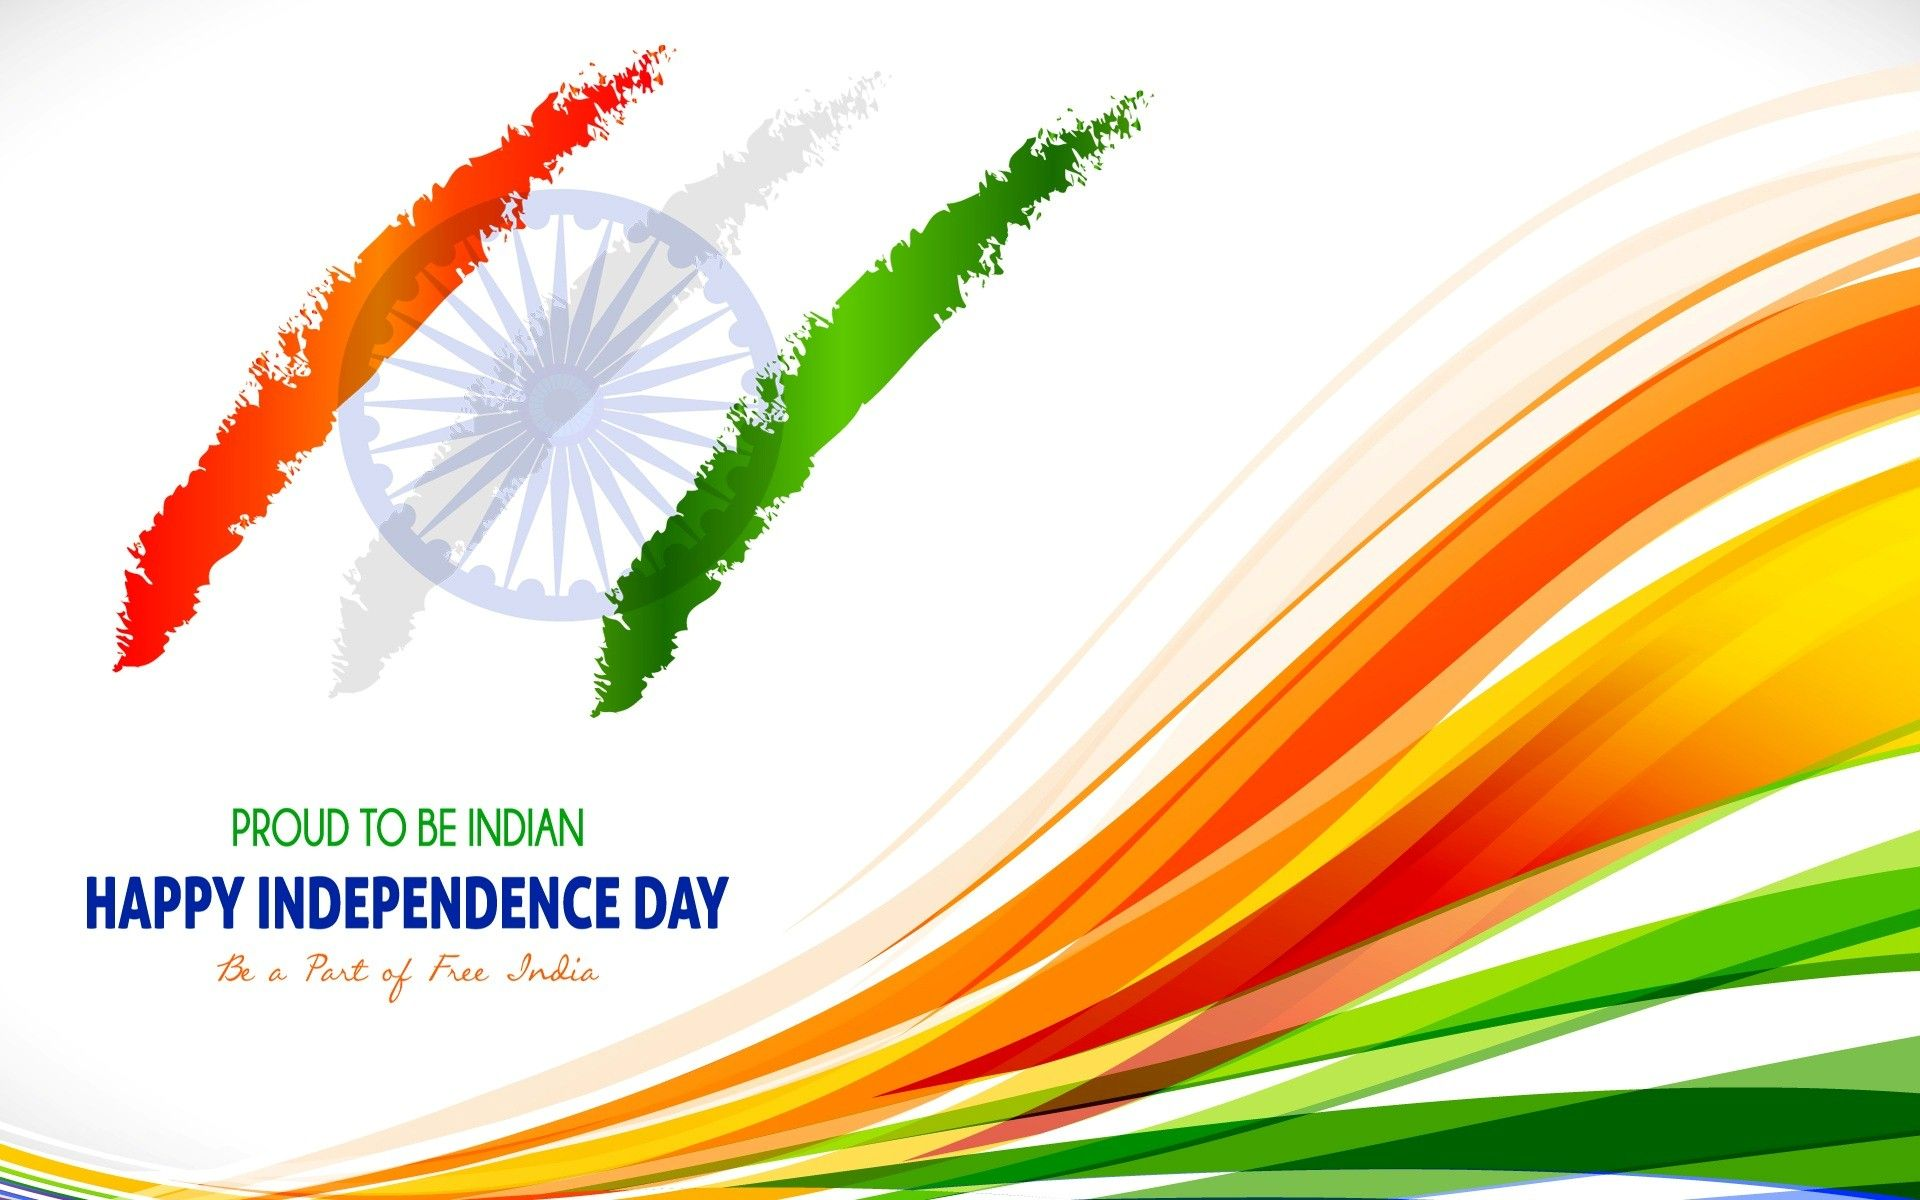 3D Tiranga Flag Image free Download in HD for Wallpaper   HD   Images Wallpapers   Independence ...